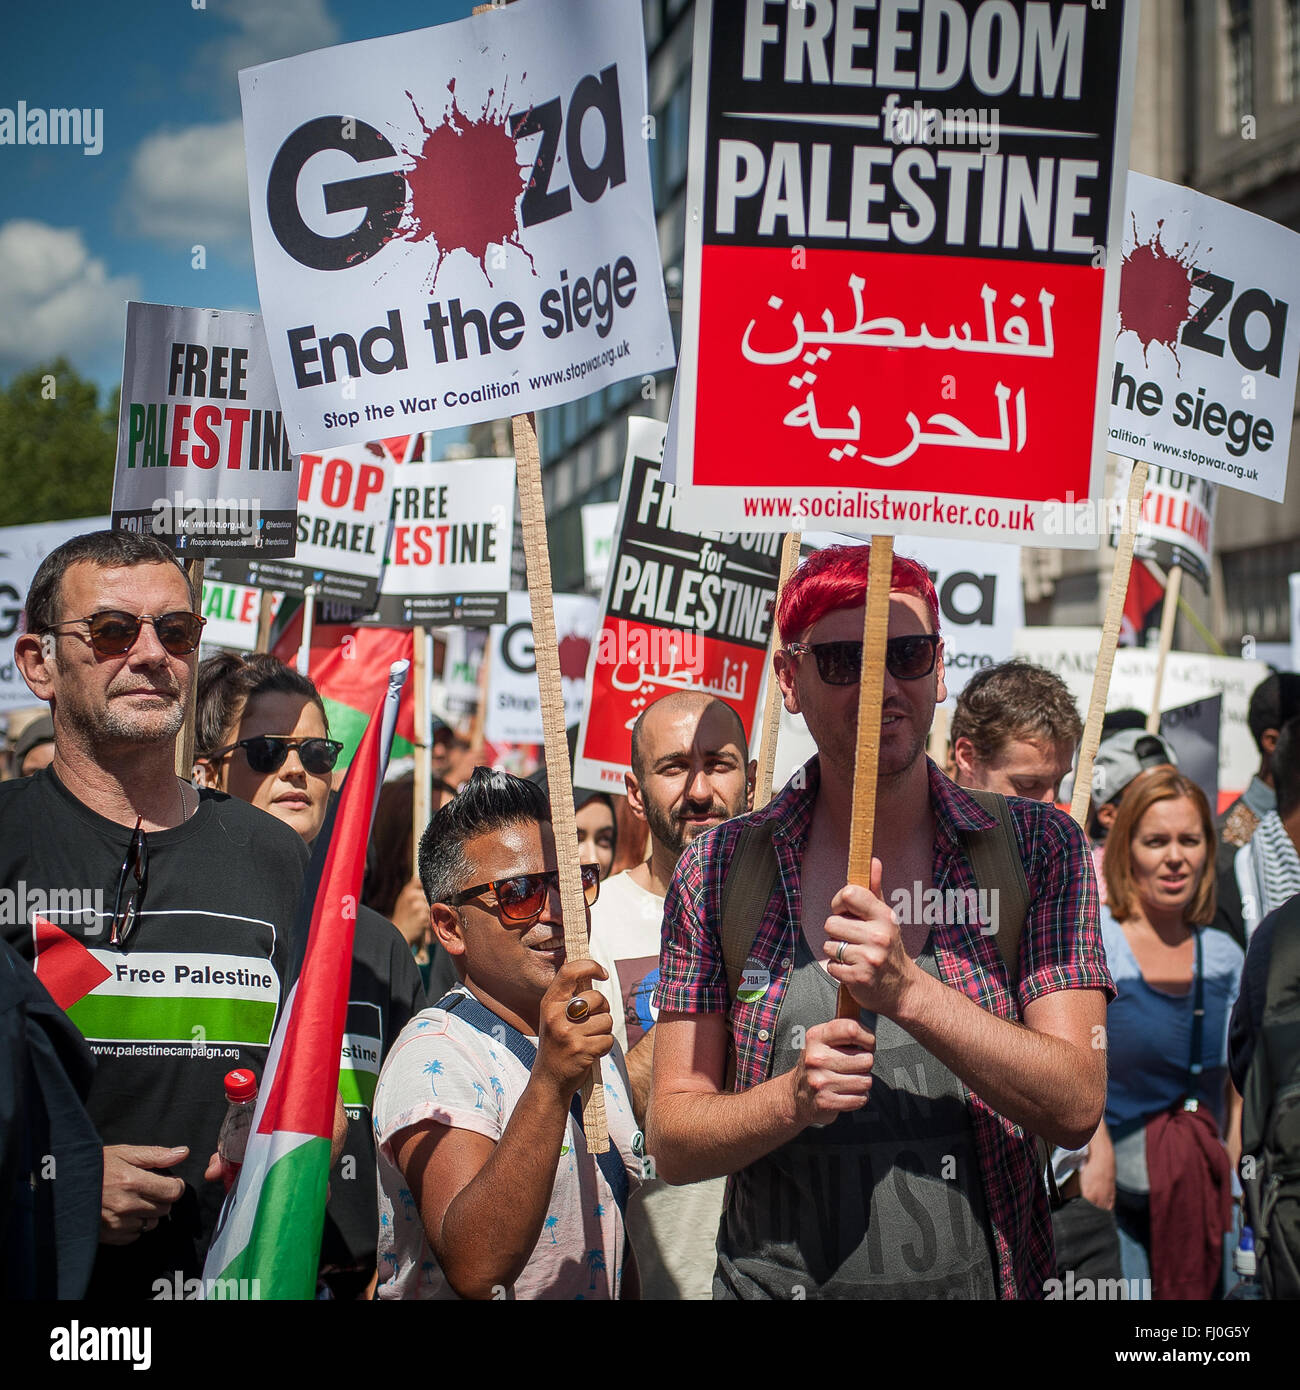 Rally for Gaza, London, Aug 9, 2014 - Stock Image